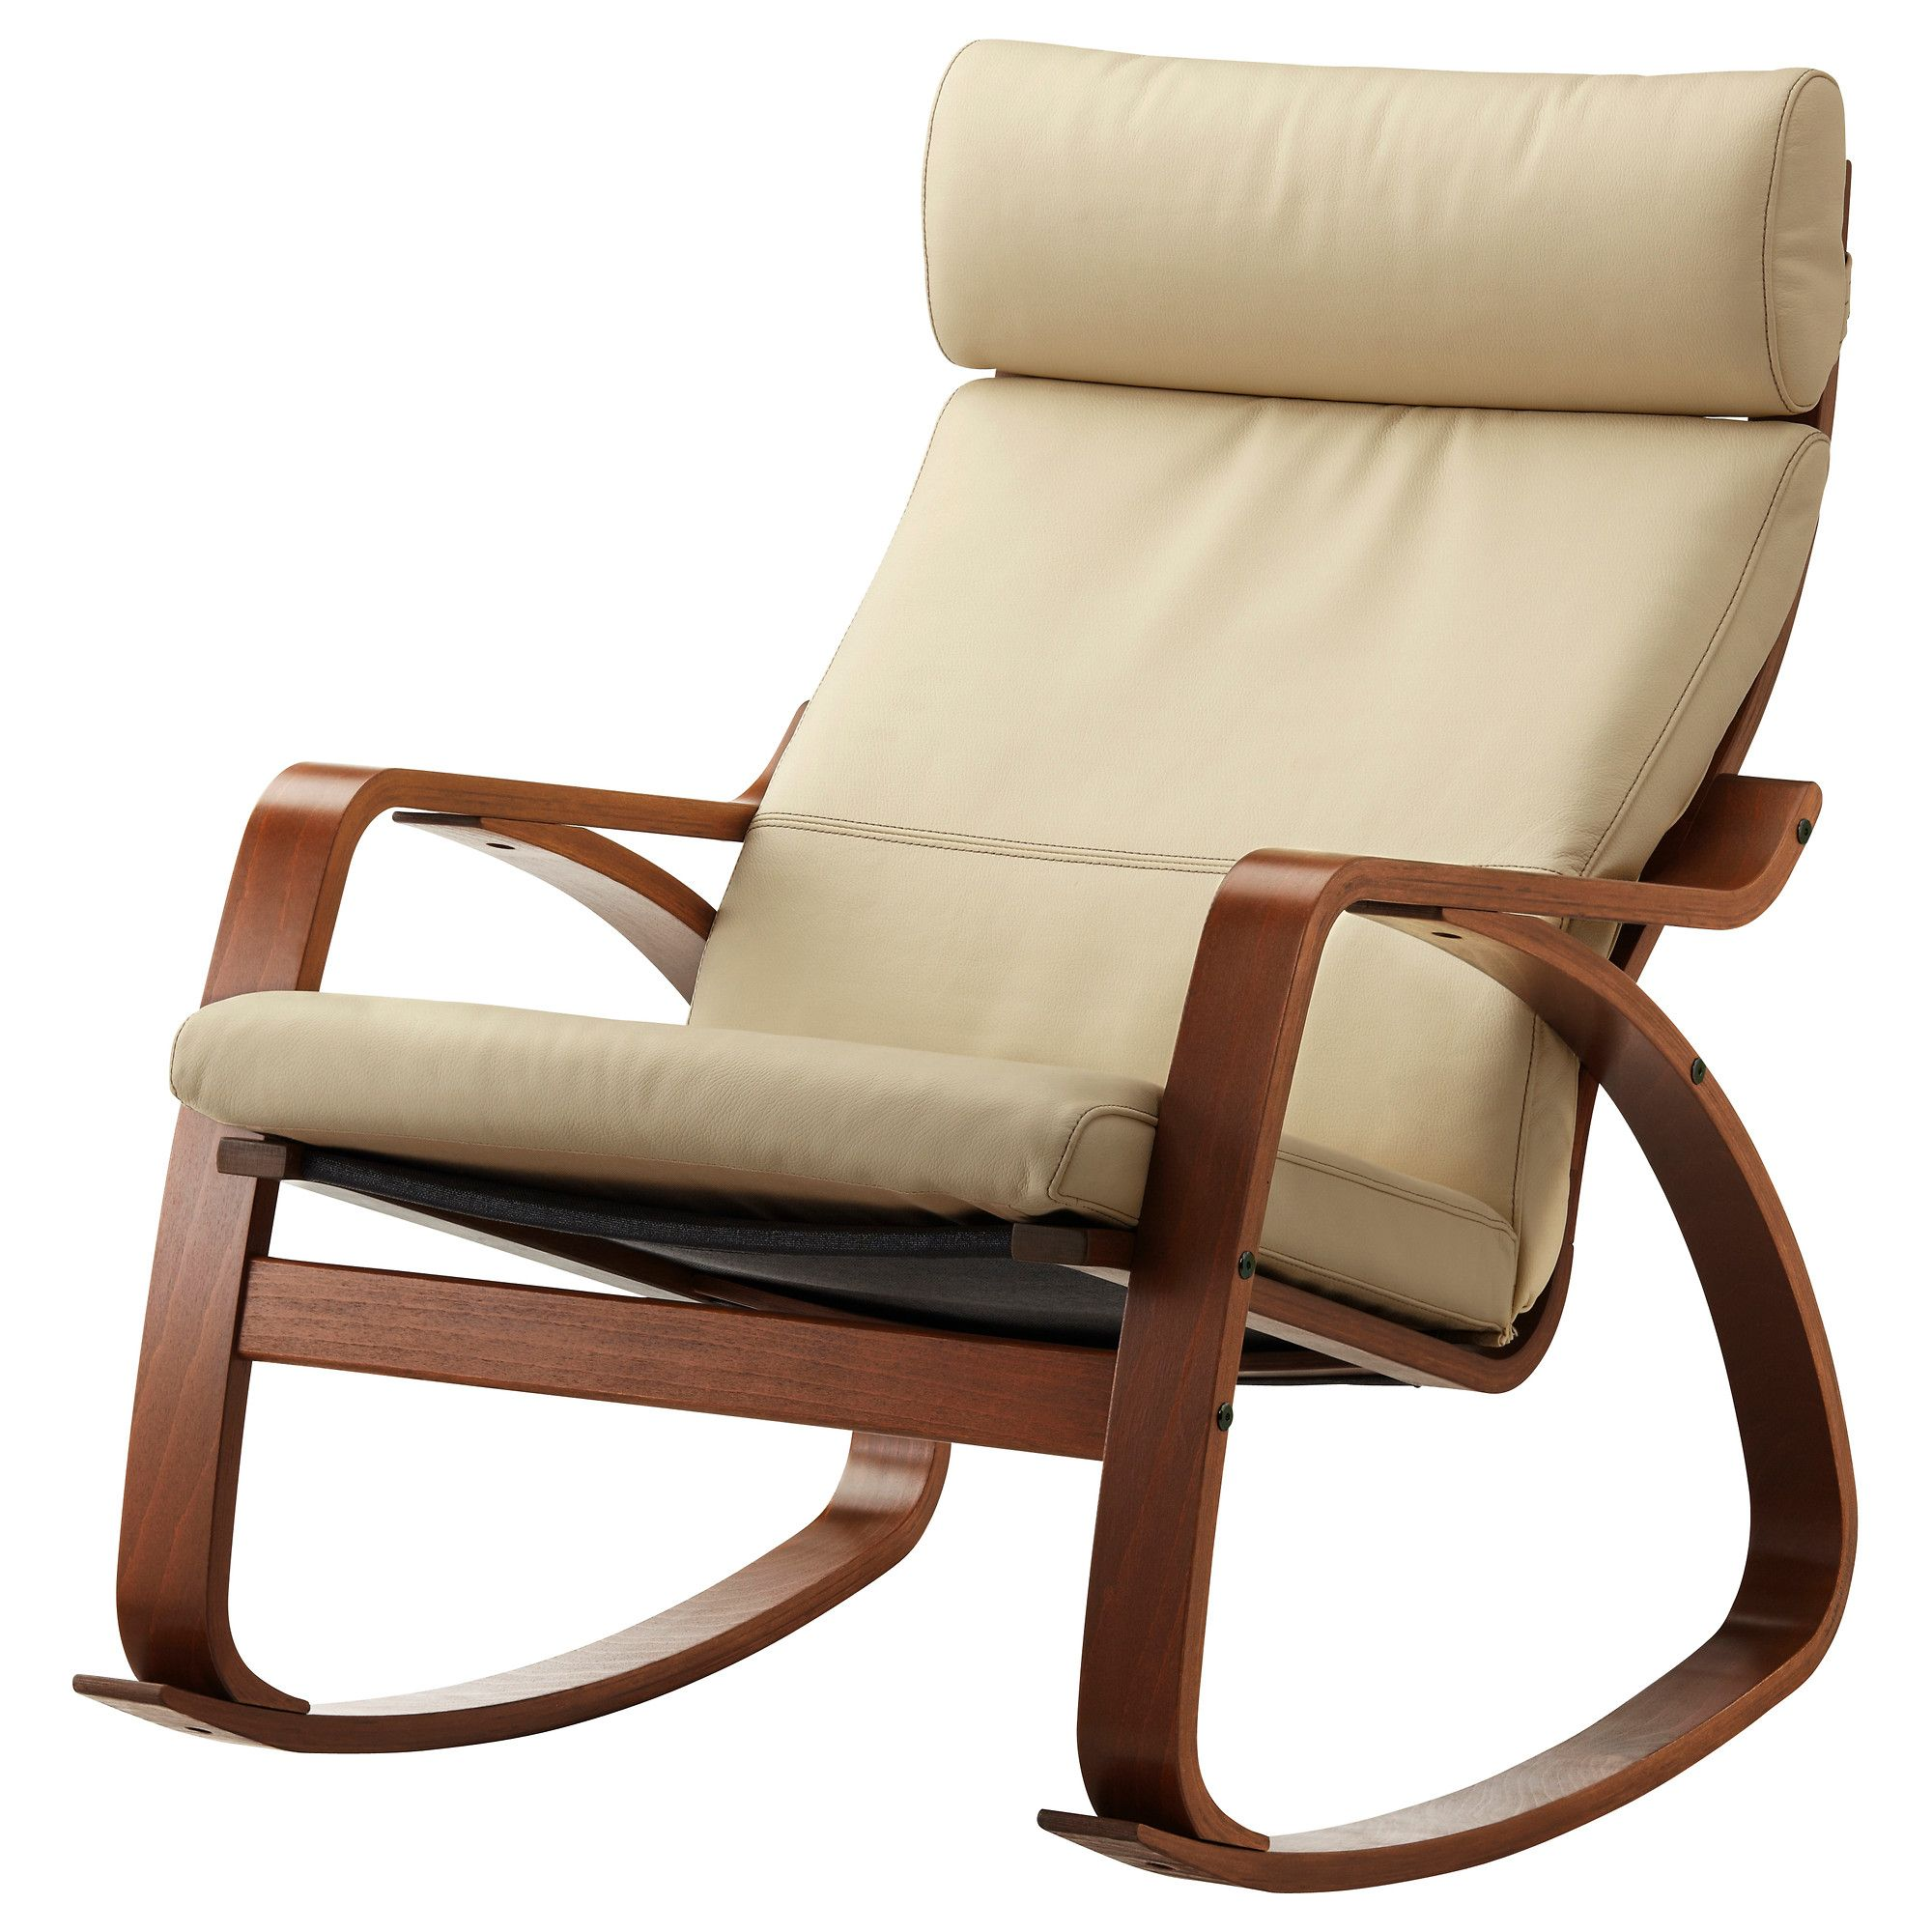 Furniture and Home Furnishings Poang rocking chair